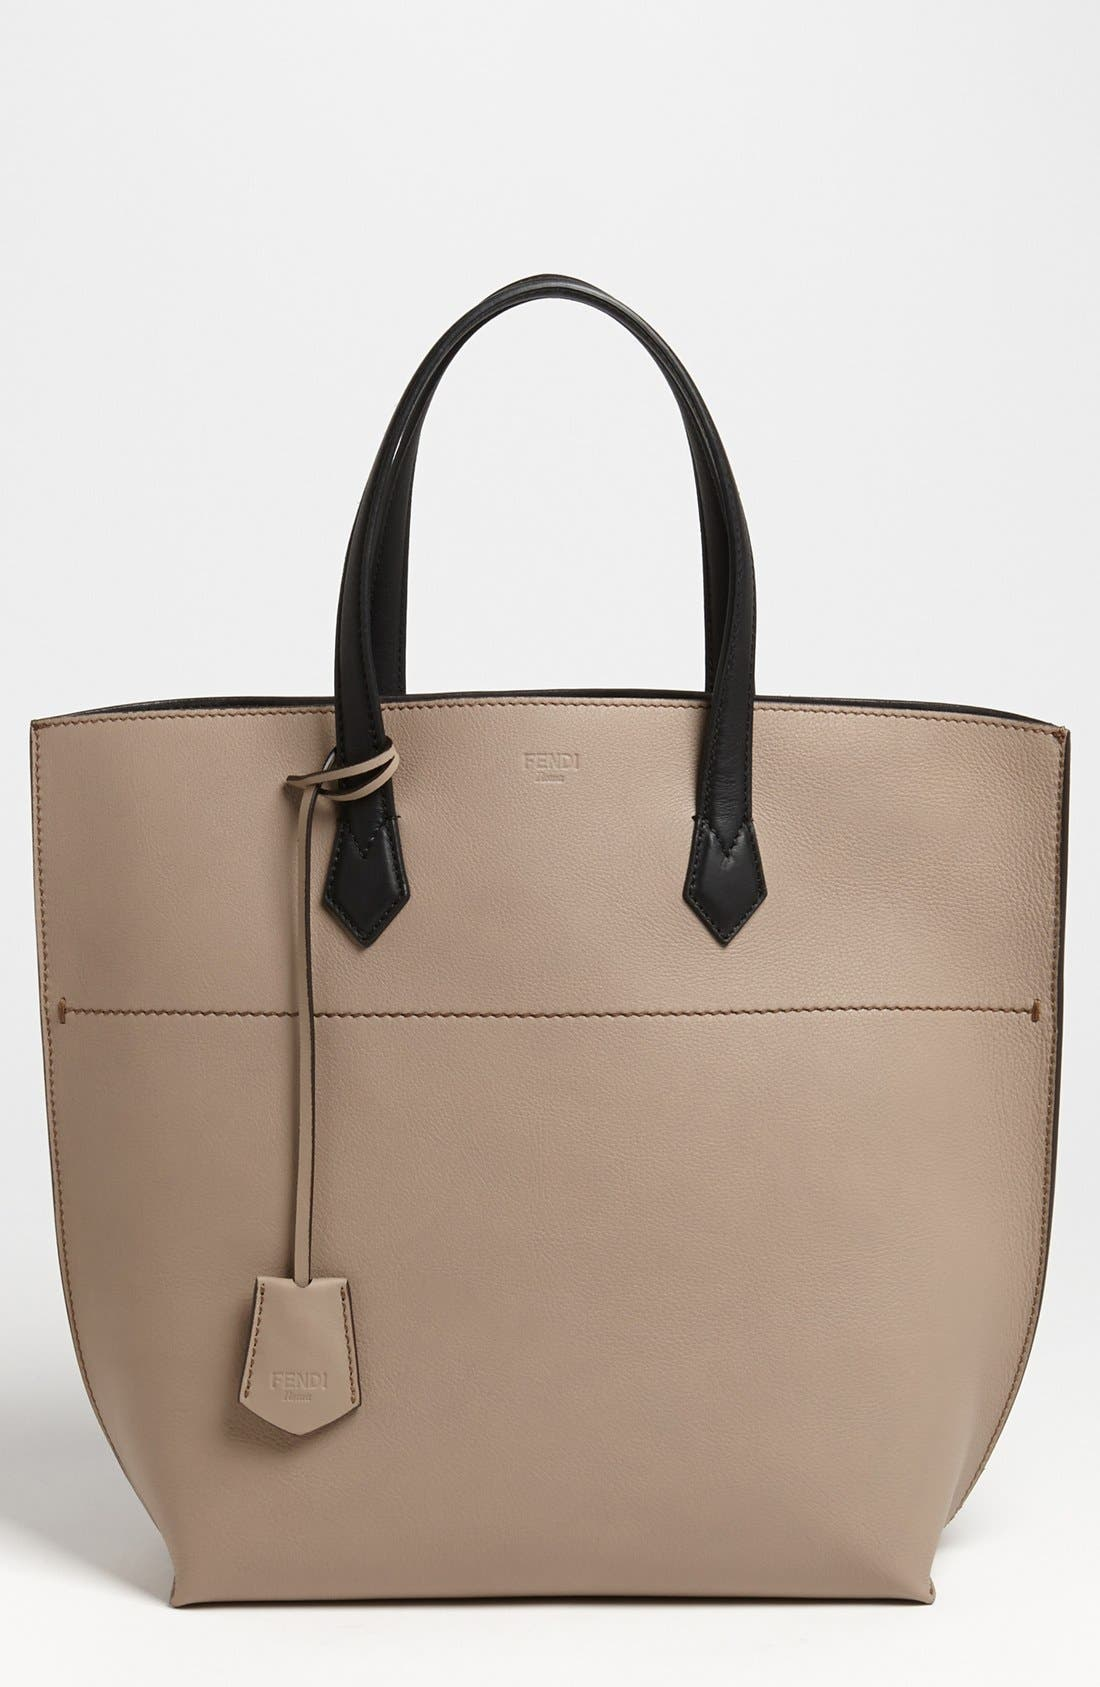 Alternate Image 1 Selected - Fendi 'All In' Leather Shopper